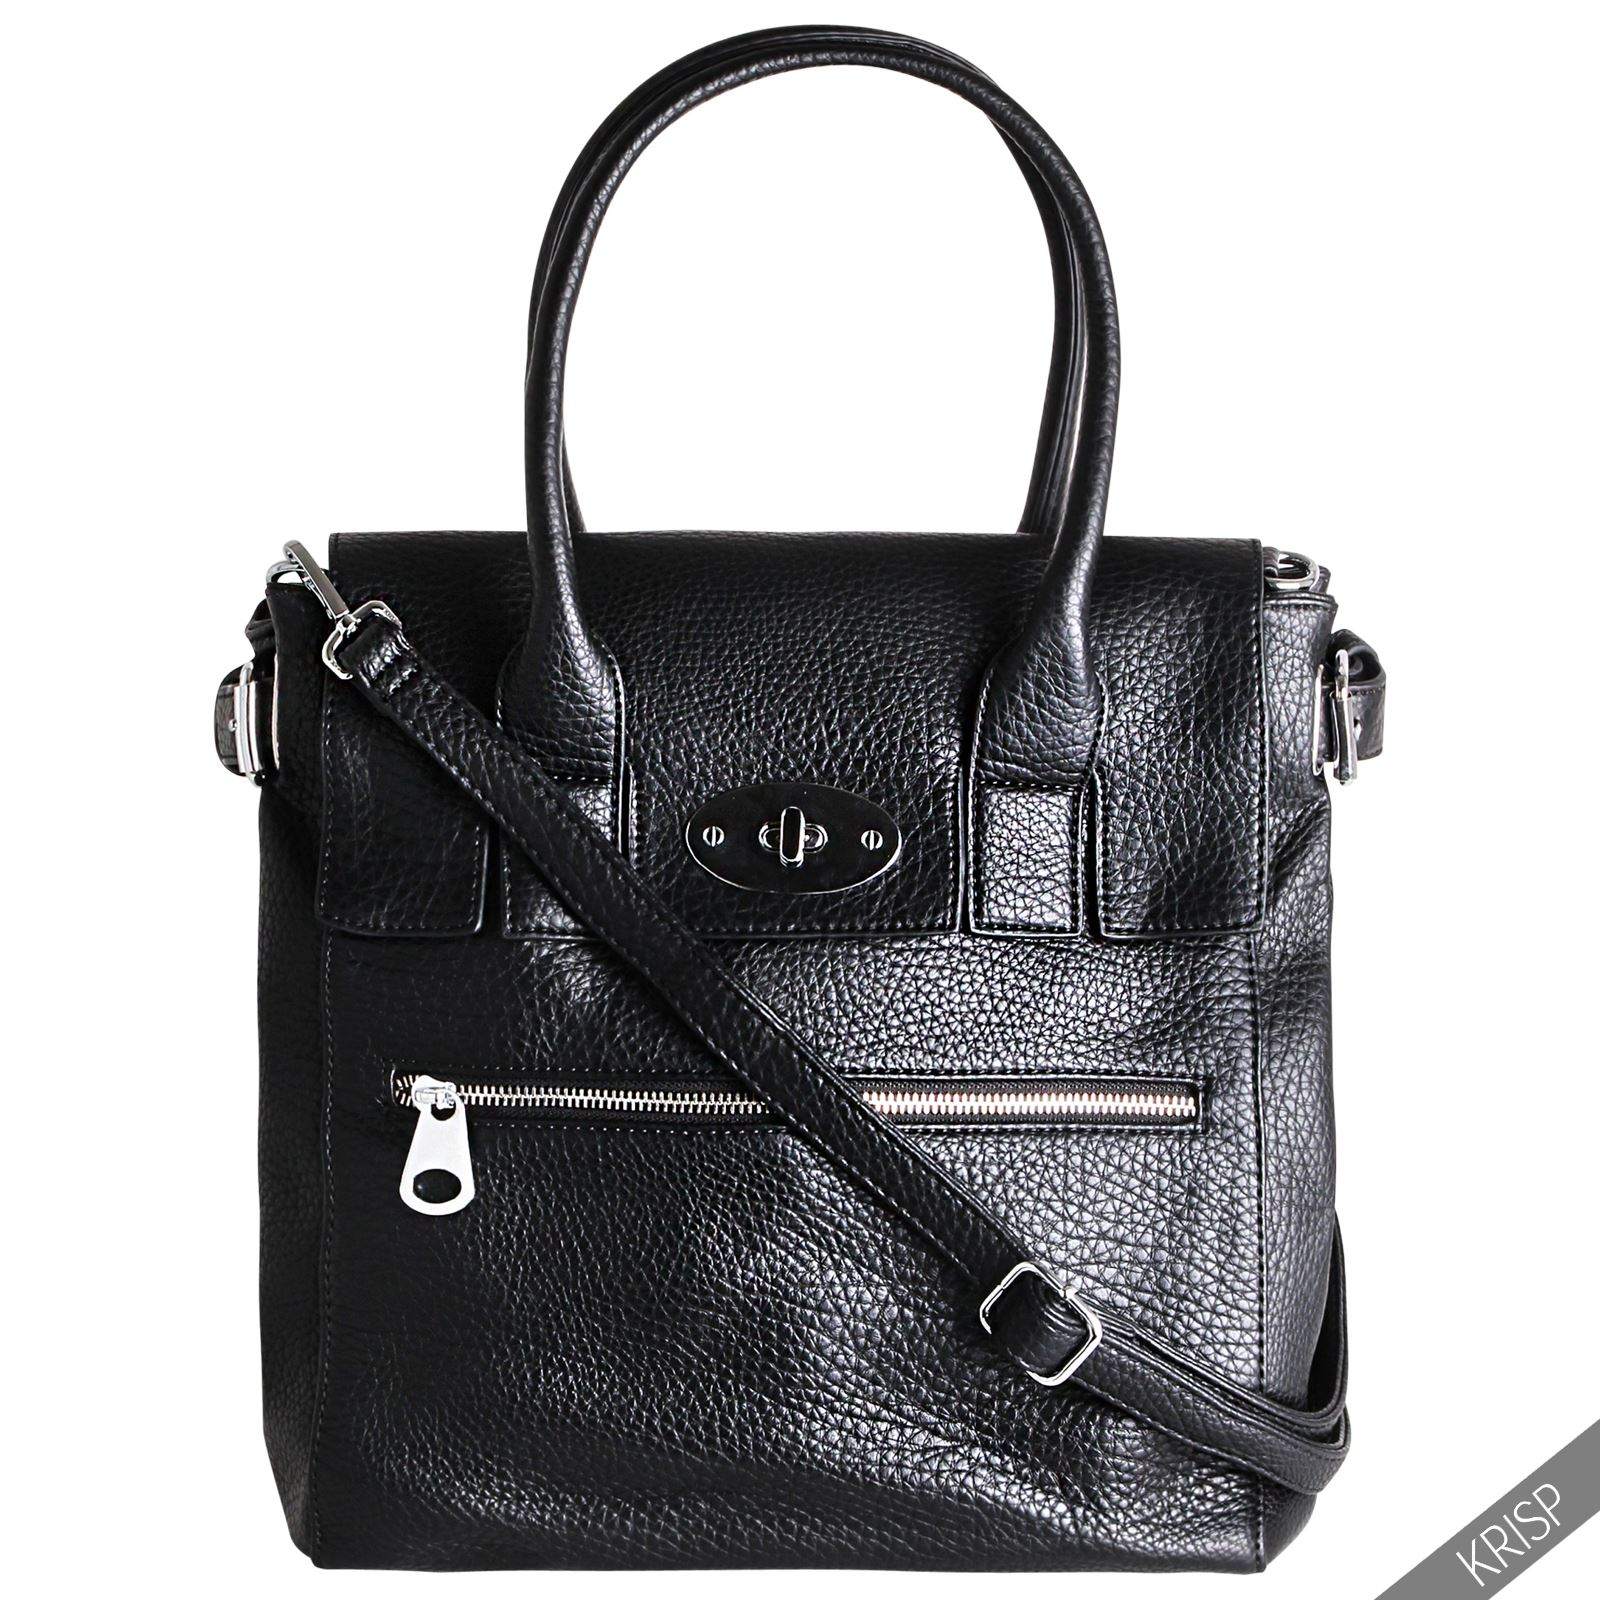 Find great deals on eBay for women work tote bags. Shop with confidence.